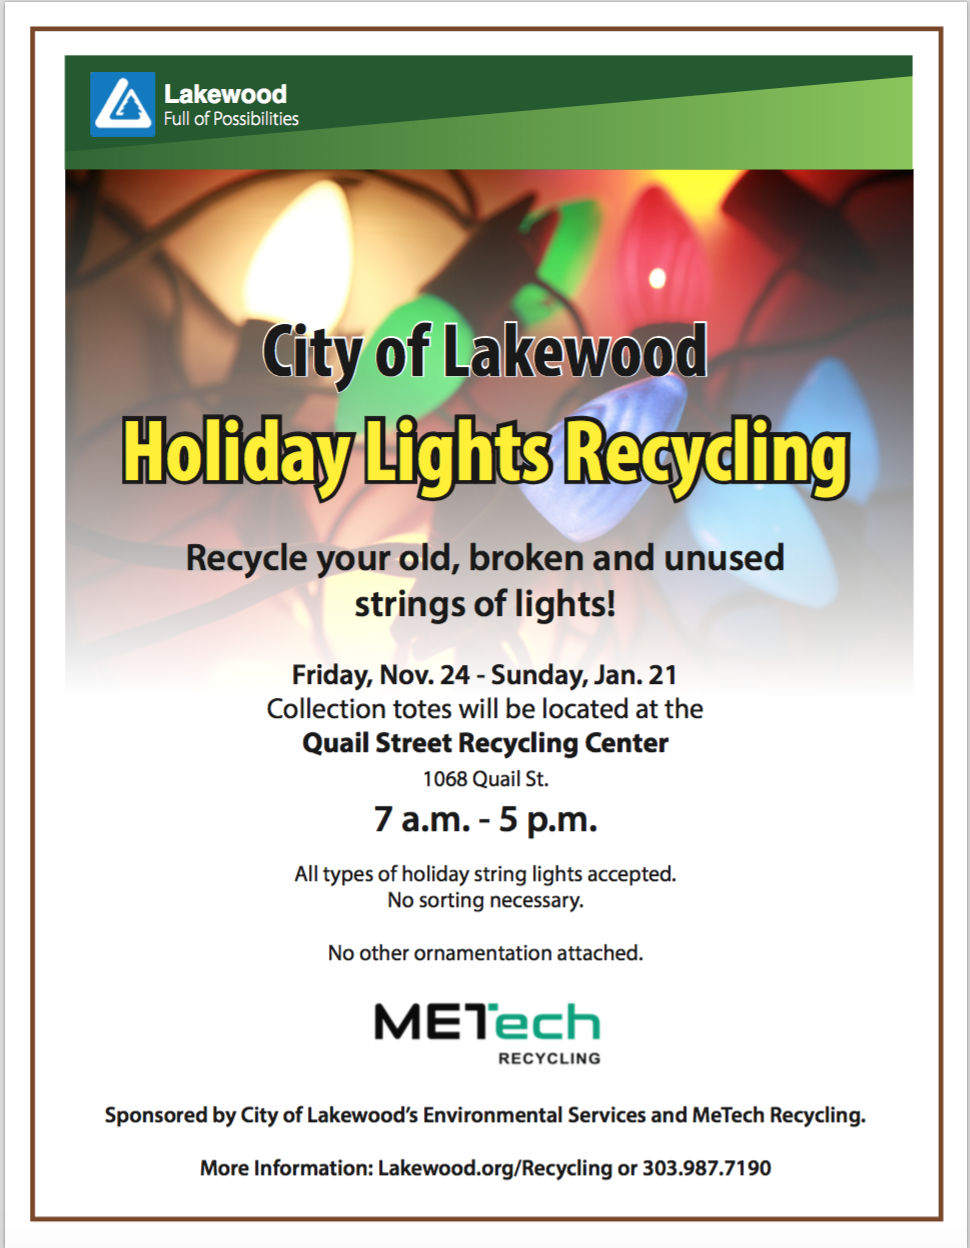 metech recycling to offer collection totes for unwanted strings of lights no other ornamentation please collection will be available friday nov